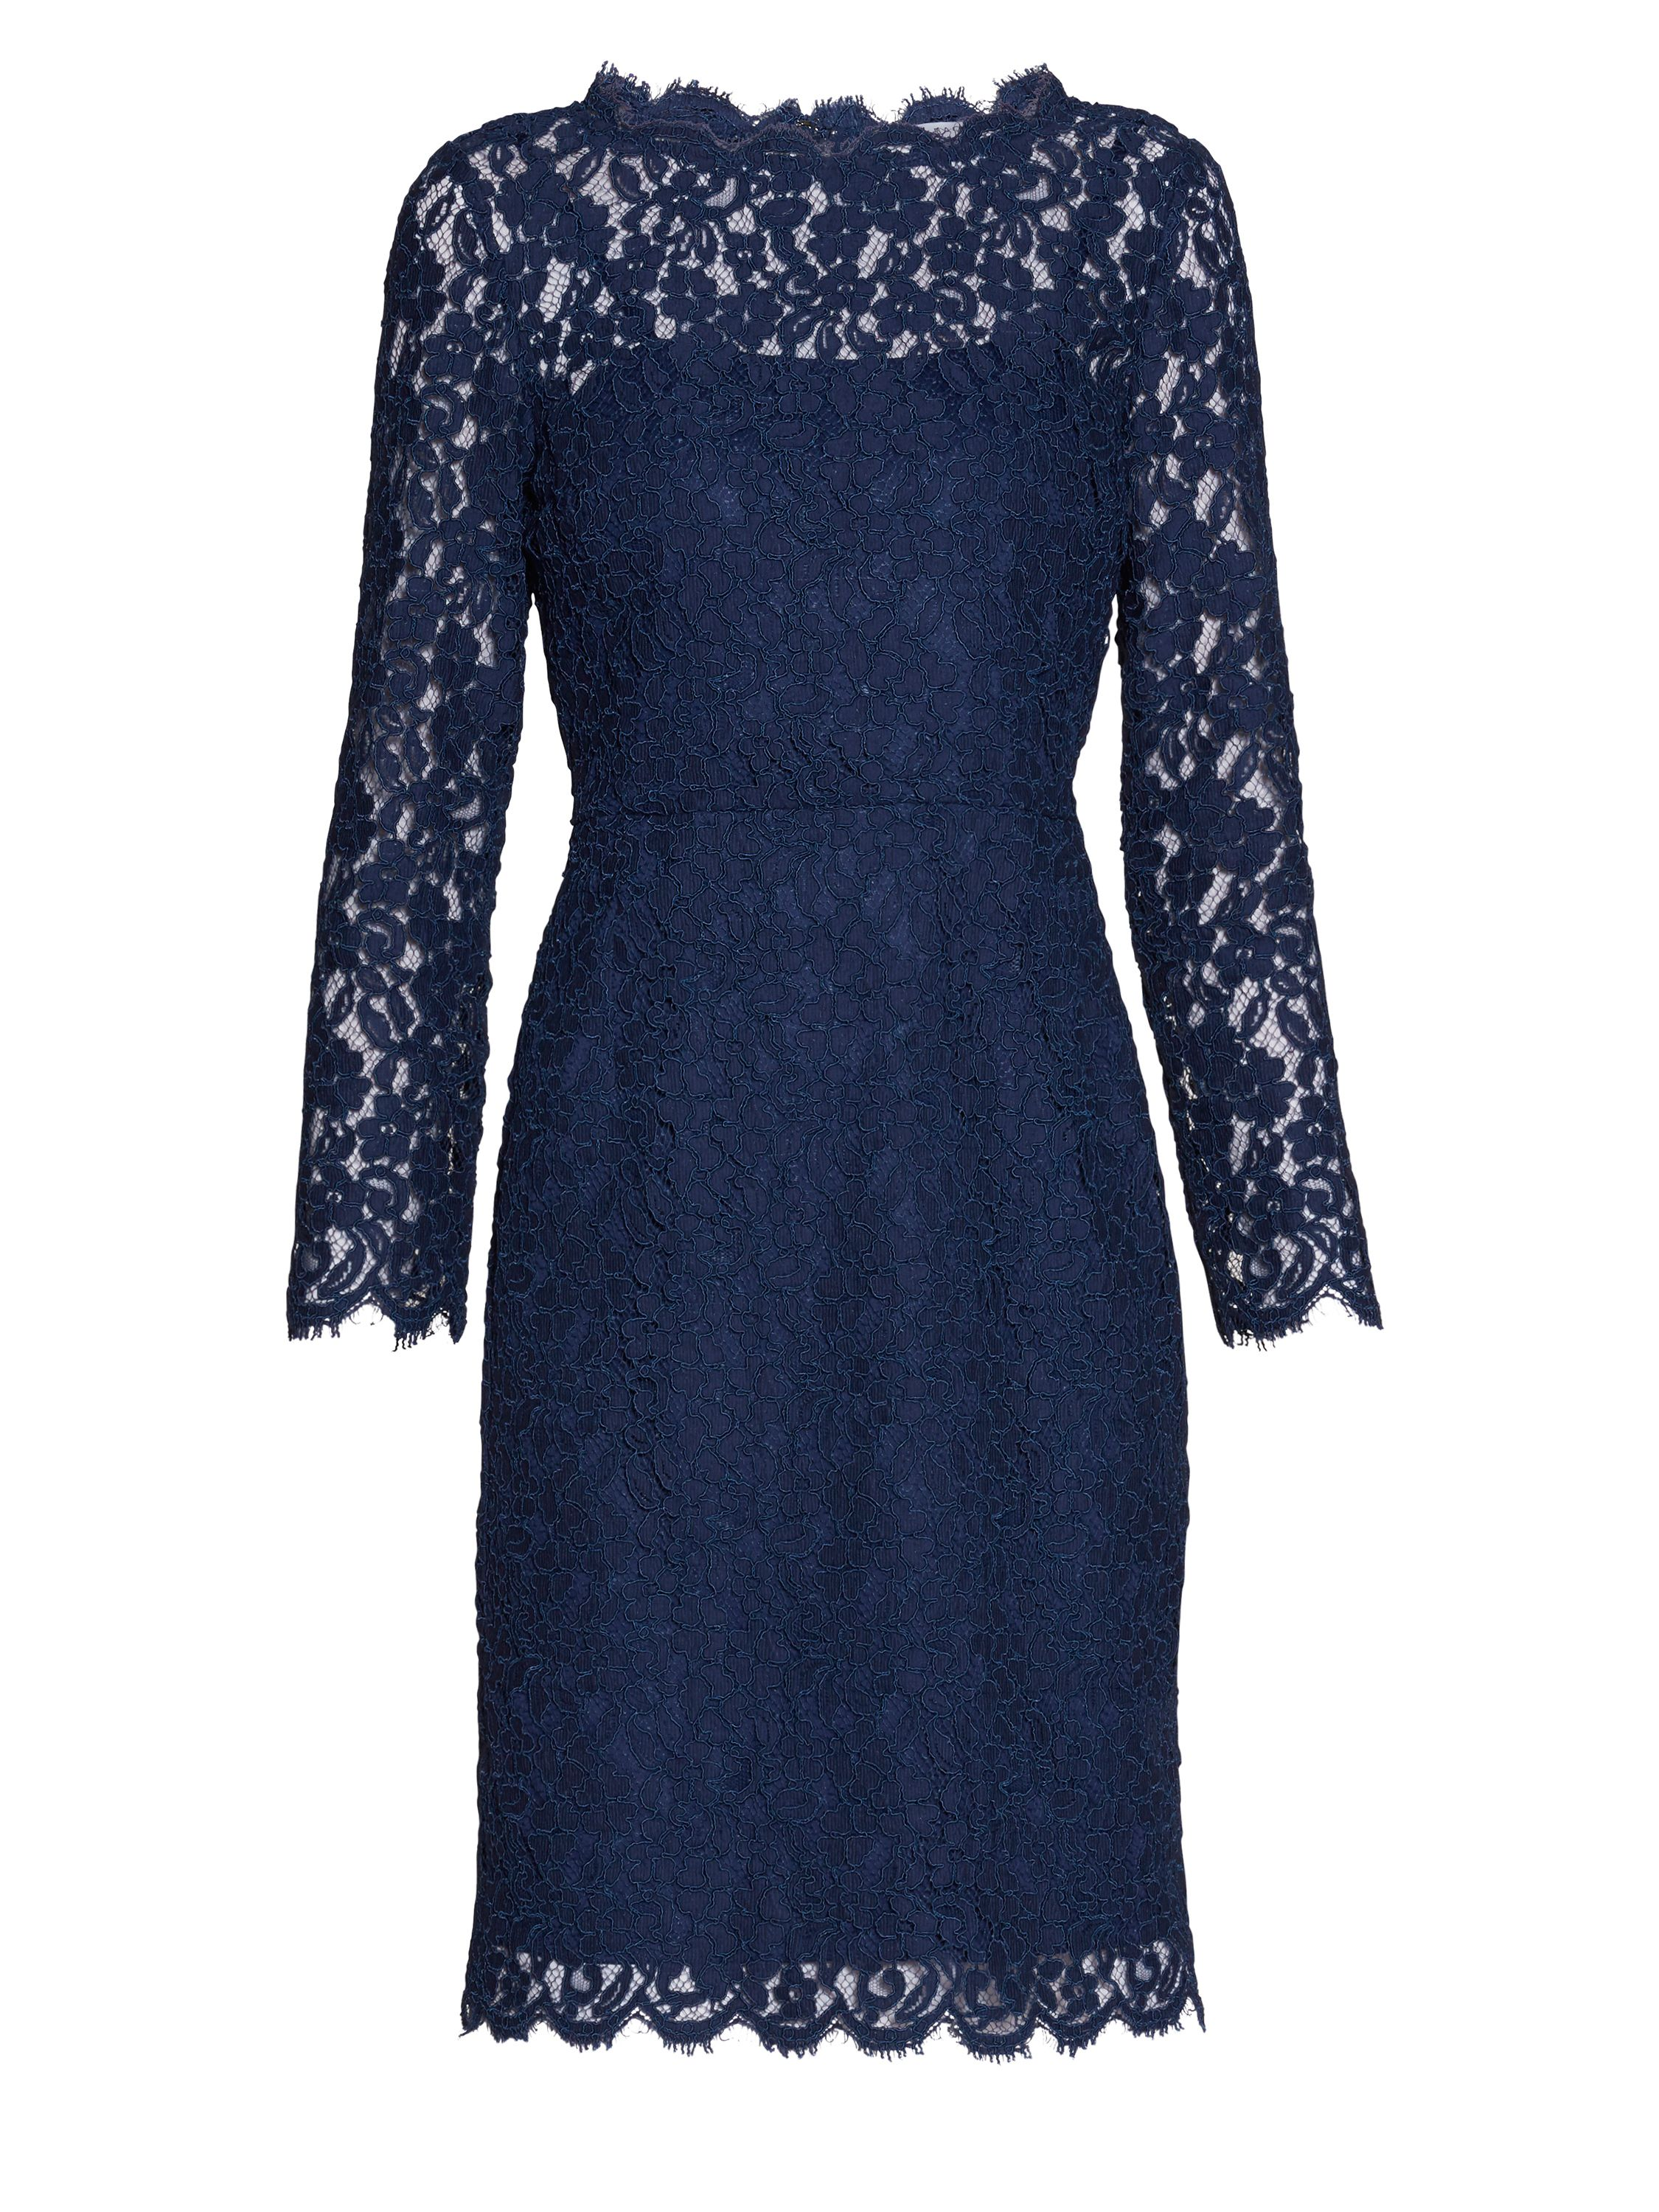 Gina Bacconi Lace dress with jewel flower buttons, Blue